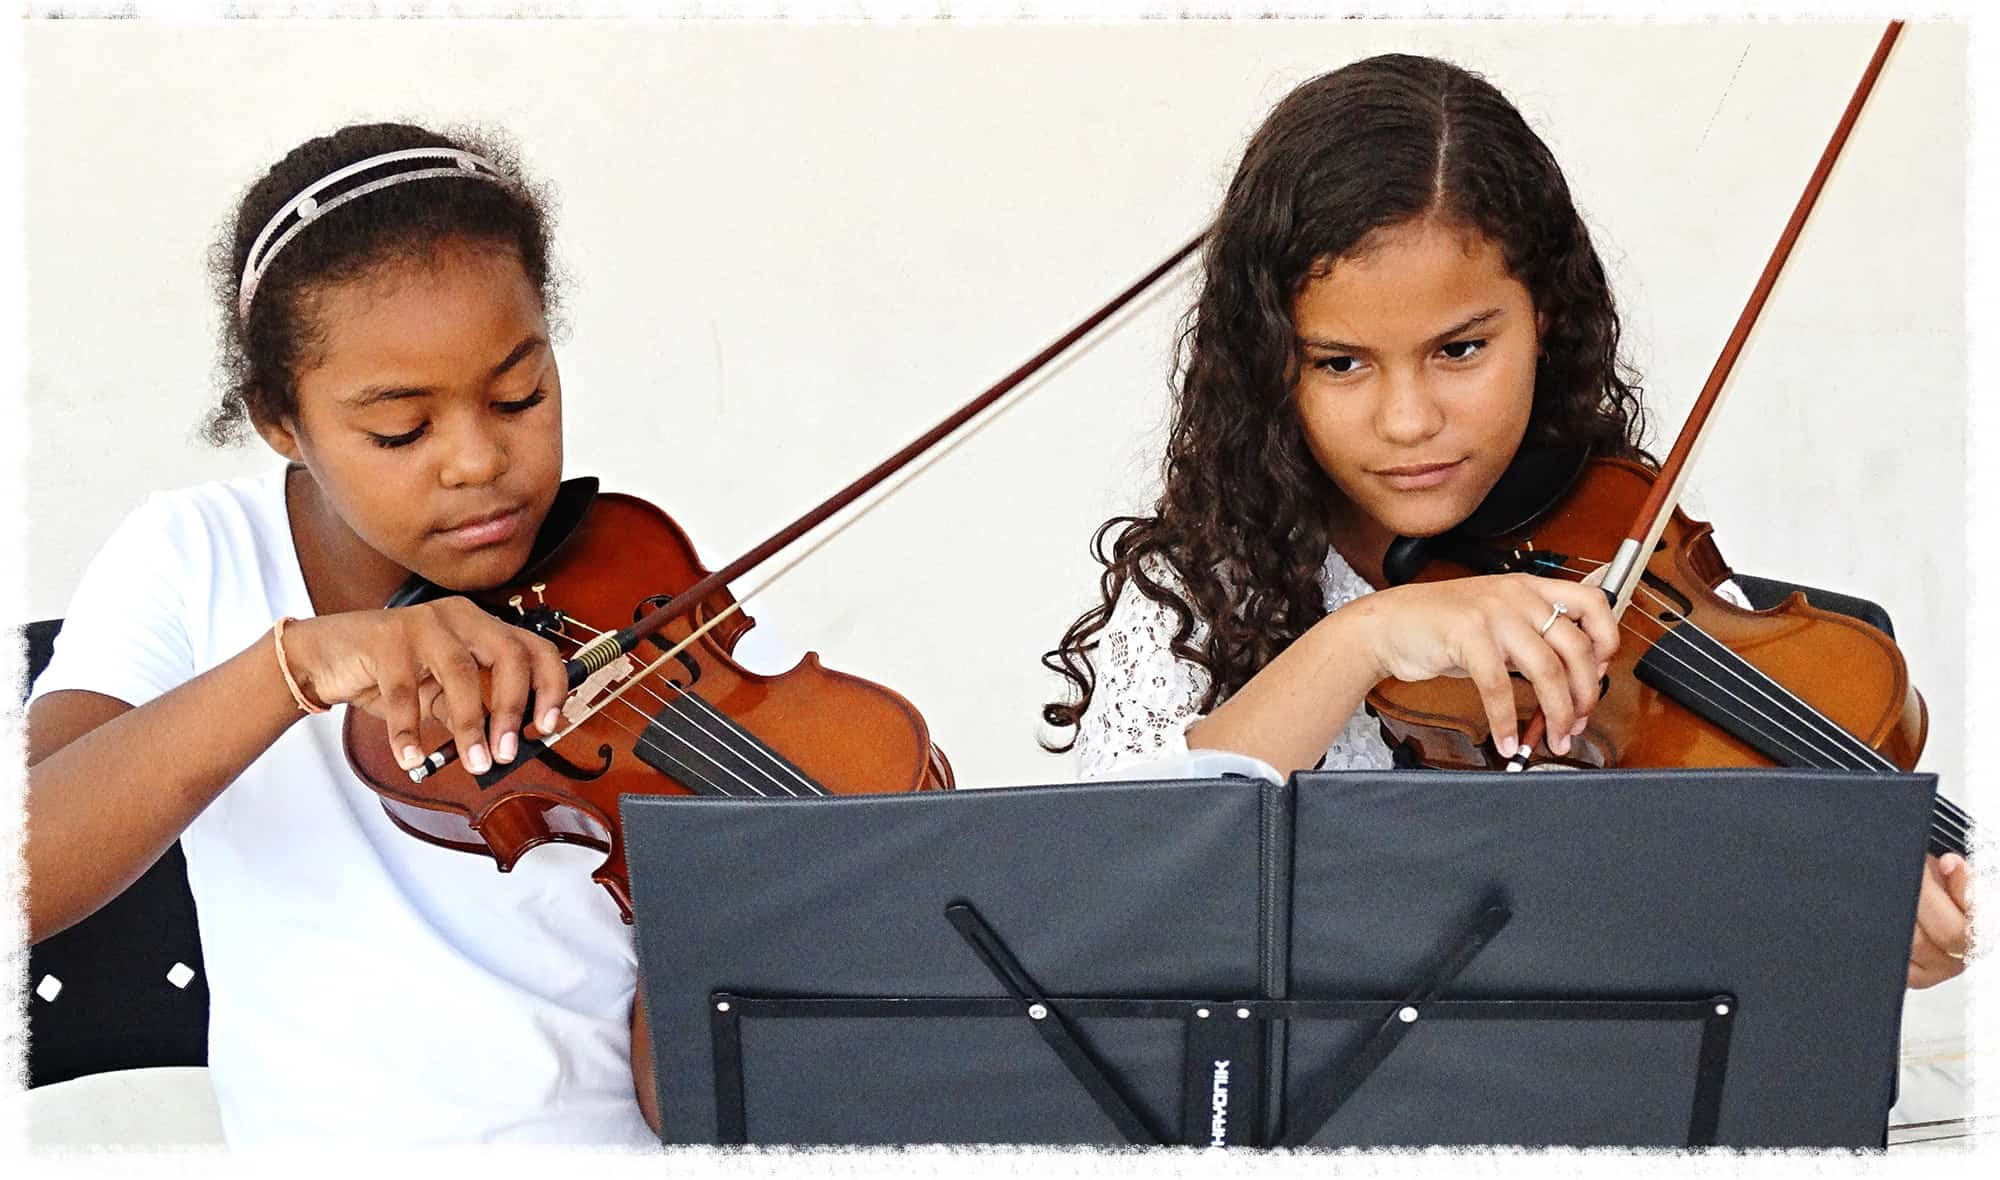 Two girls play violin together at their Compassion center in Brazil.